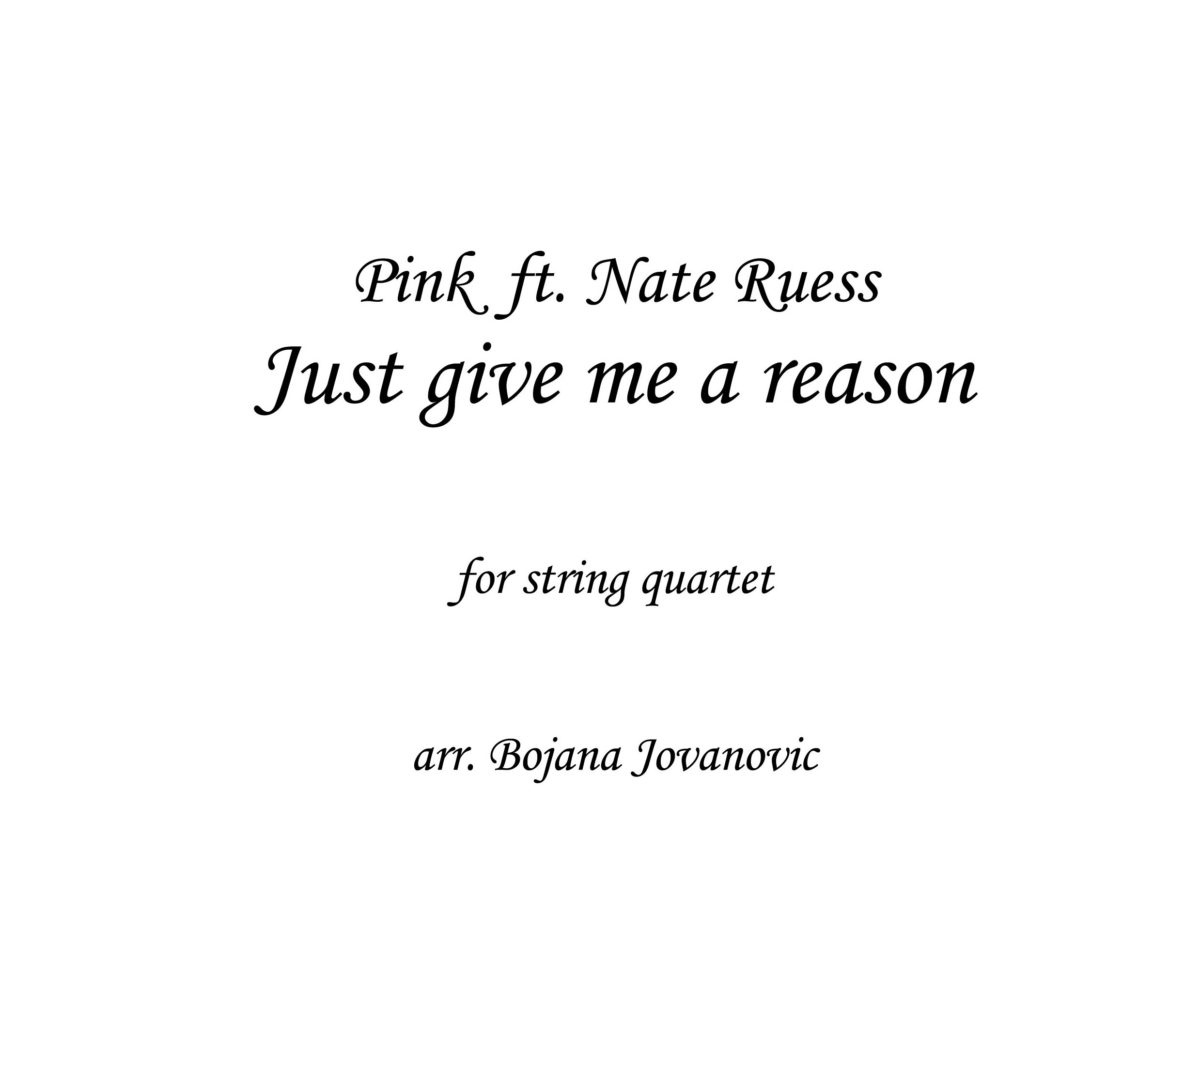 Just give me a reason (Pink) - Sheet Music